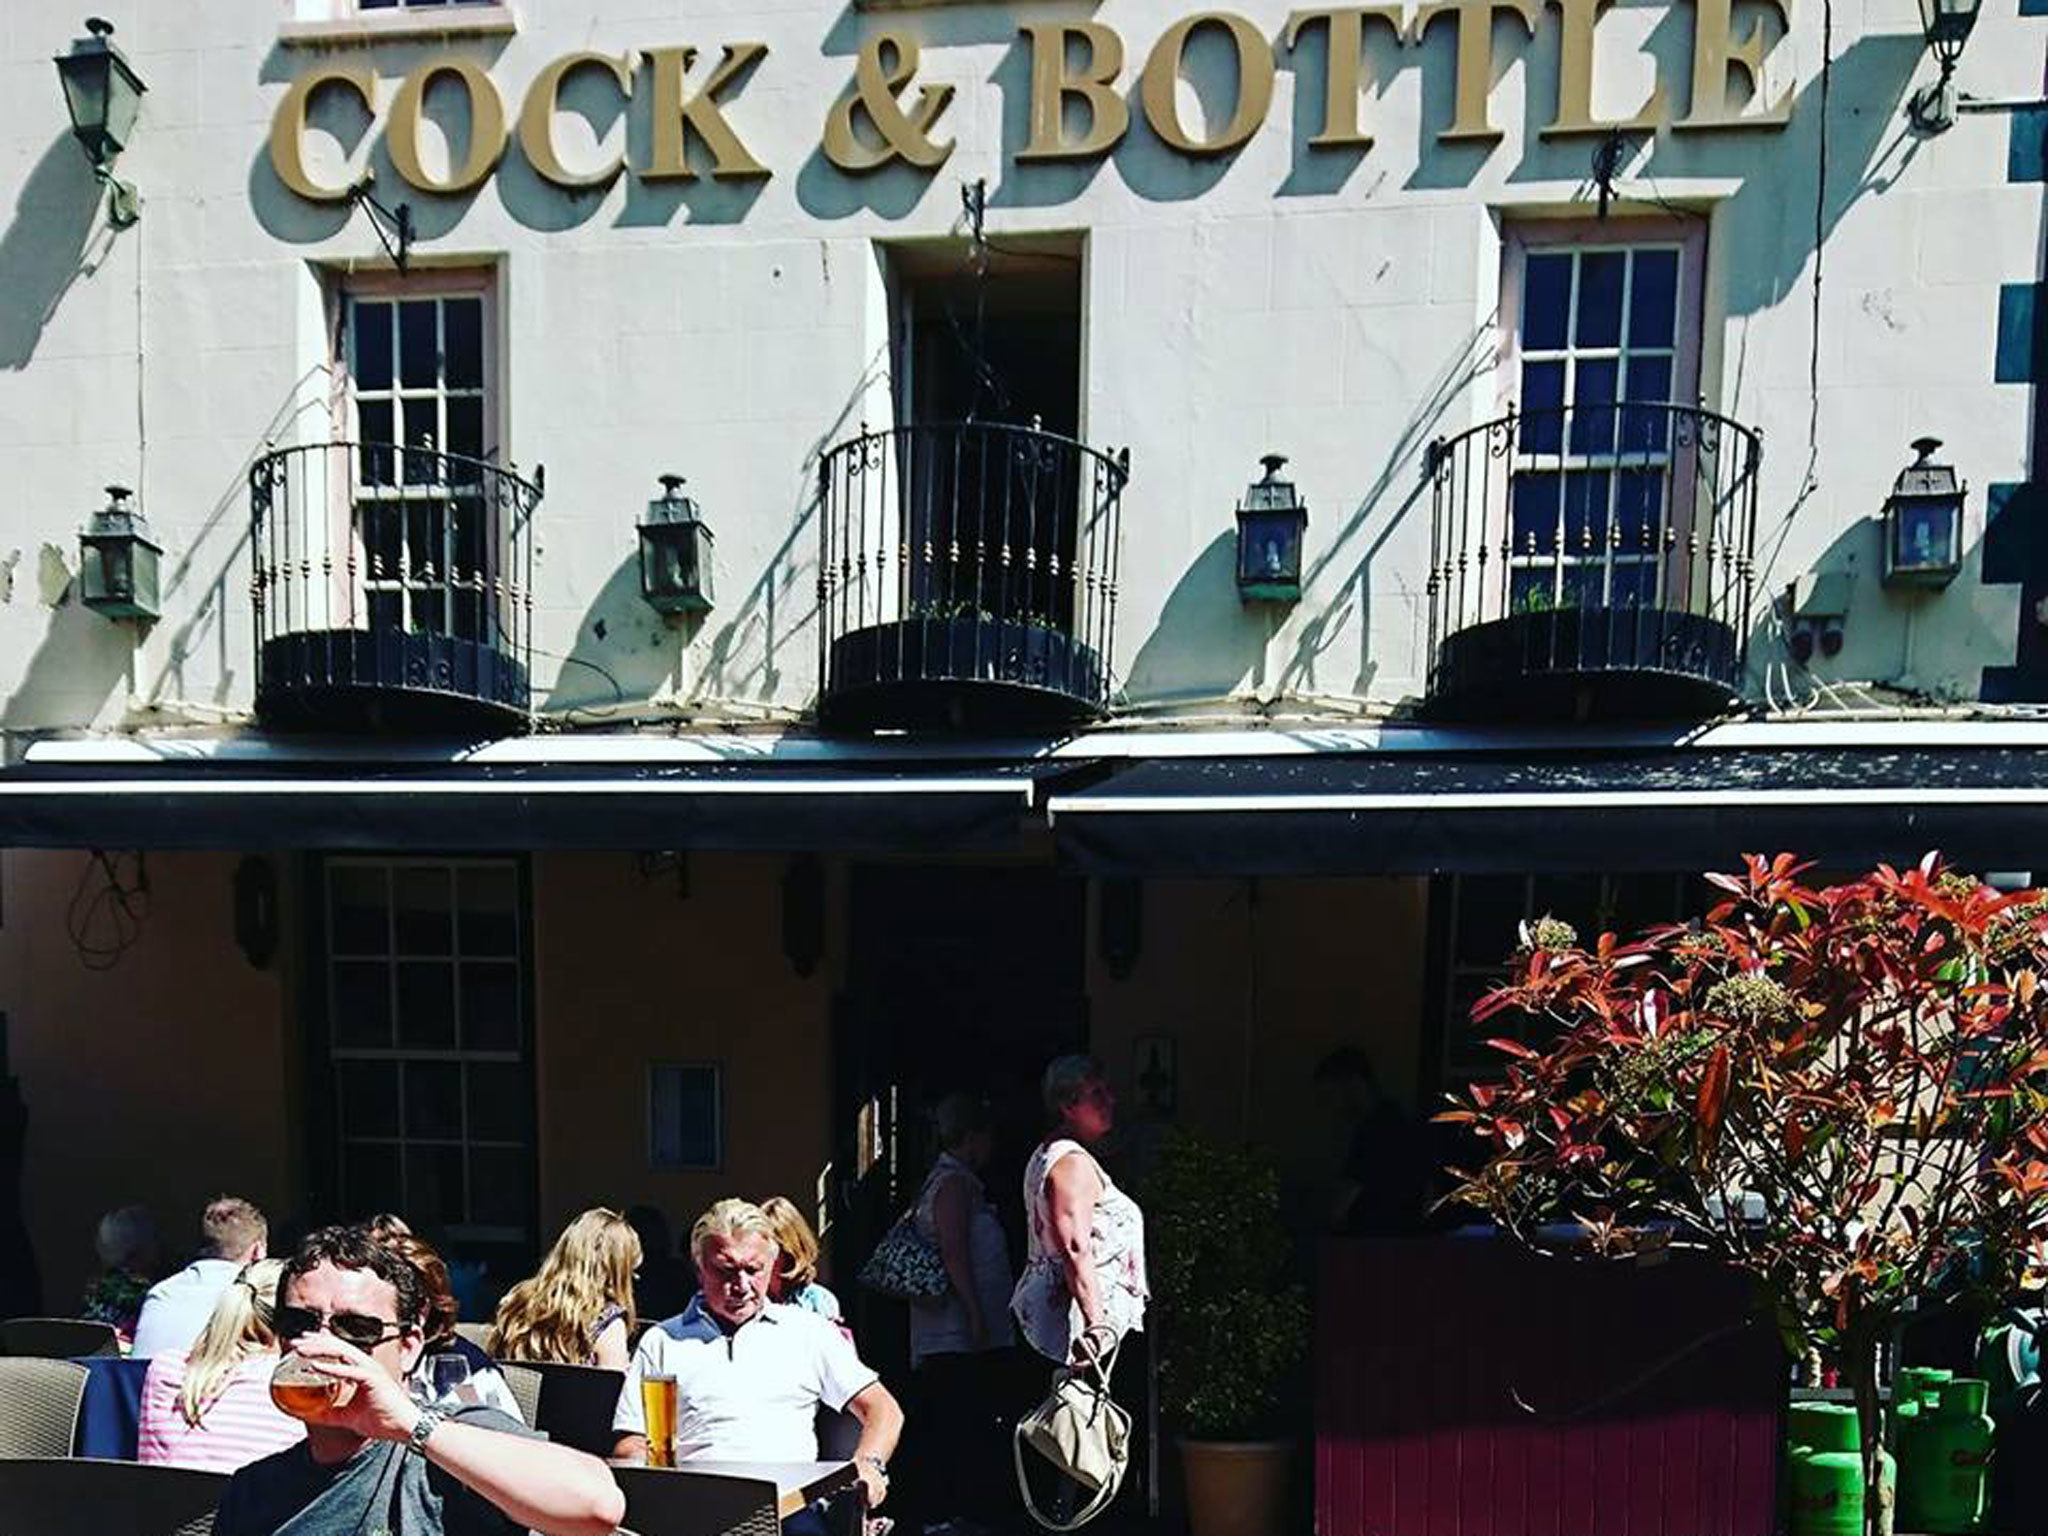 The Cock & Bottle - Jersey - UK